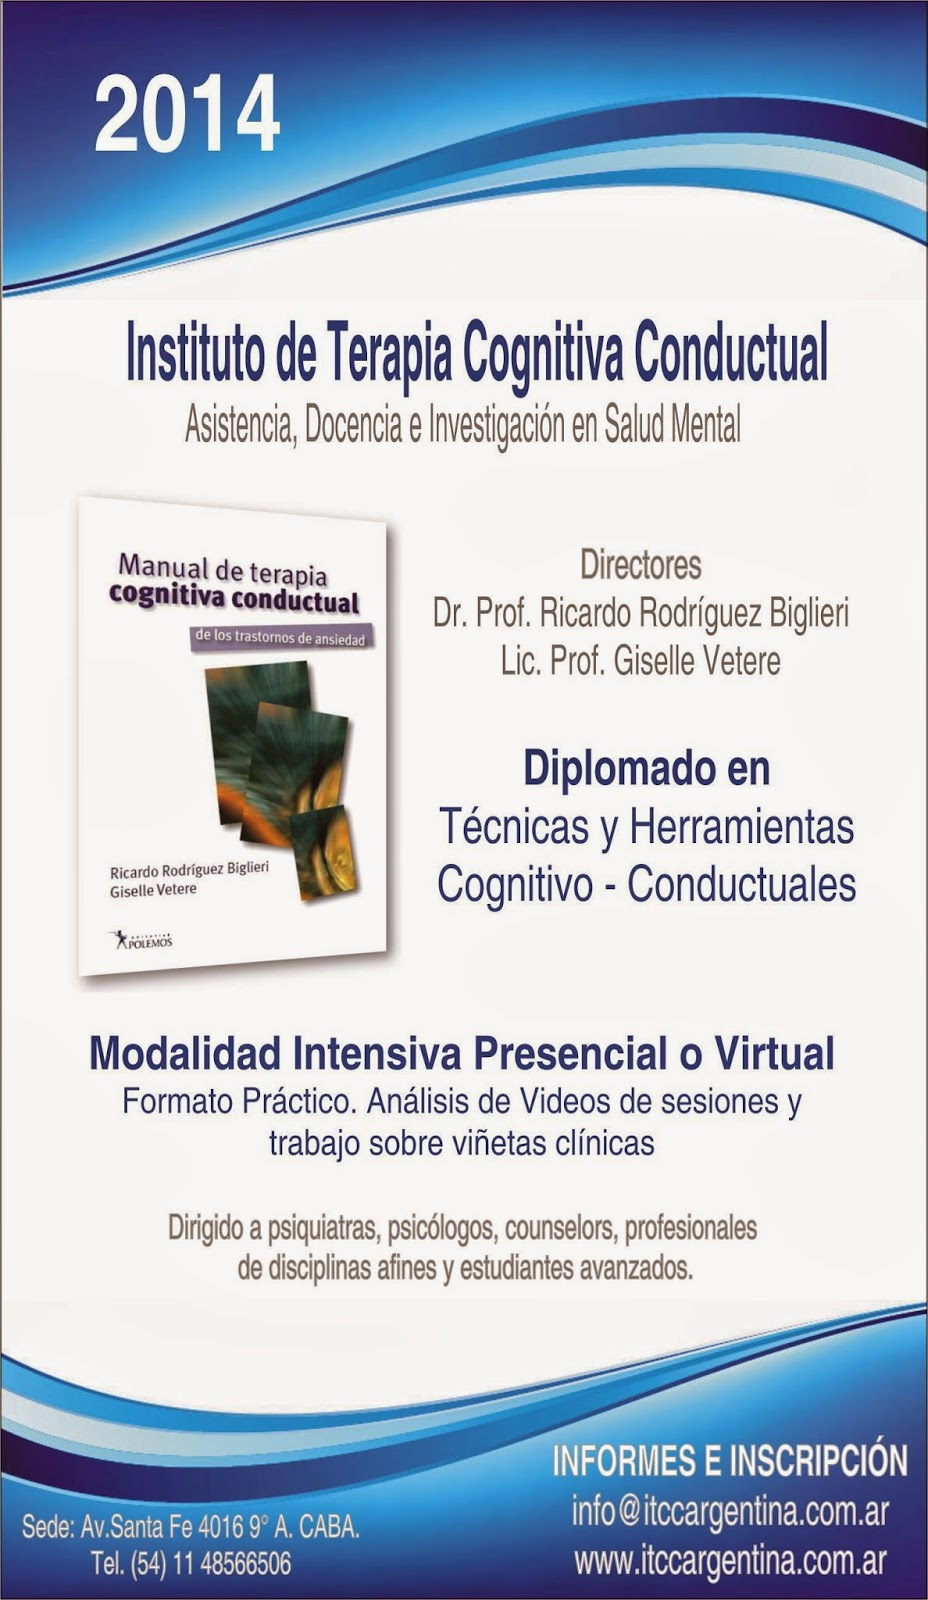 Instituto de Terapia Cognitiva Conductual